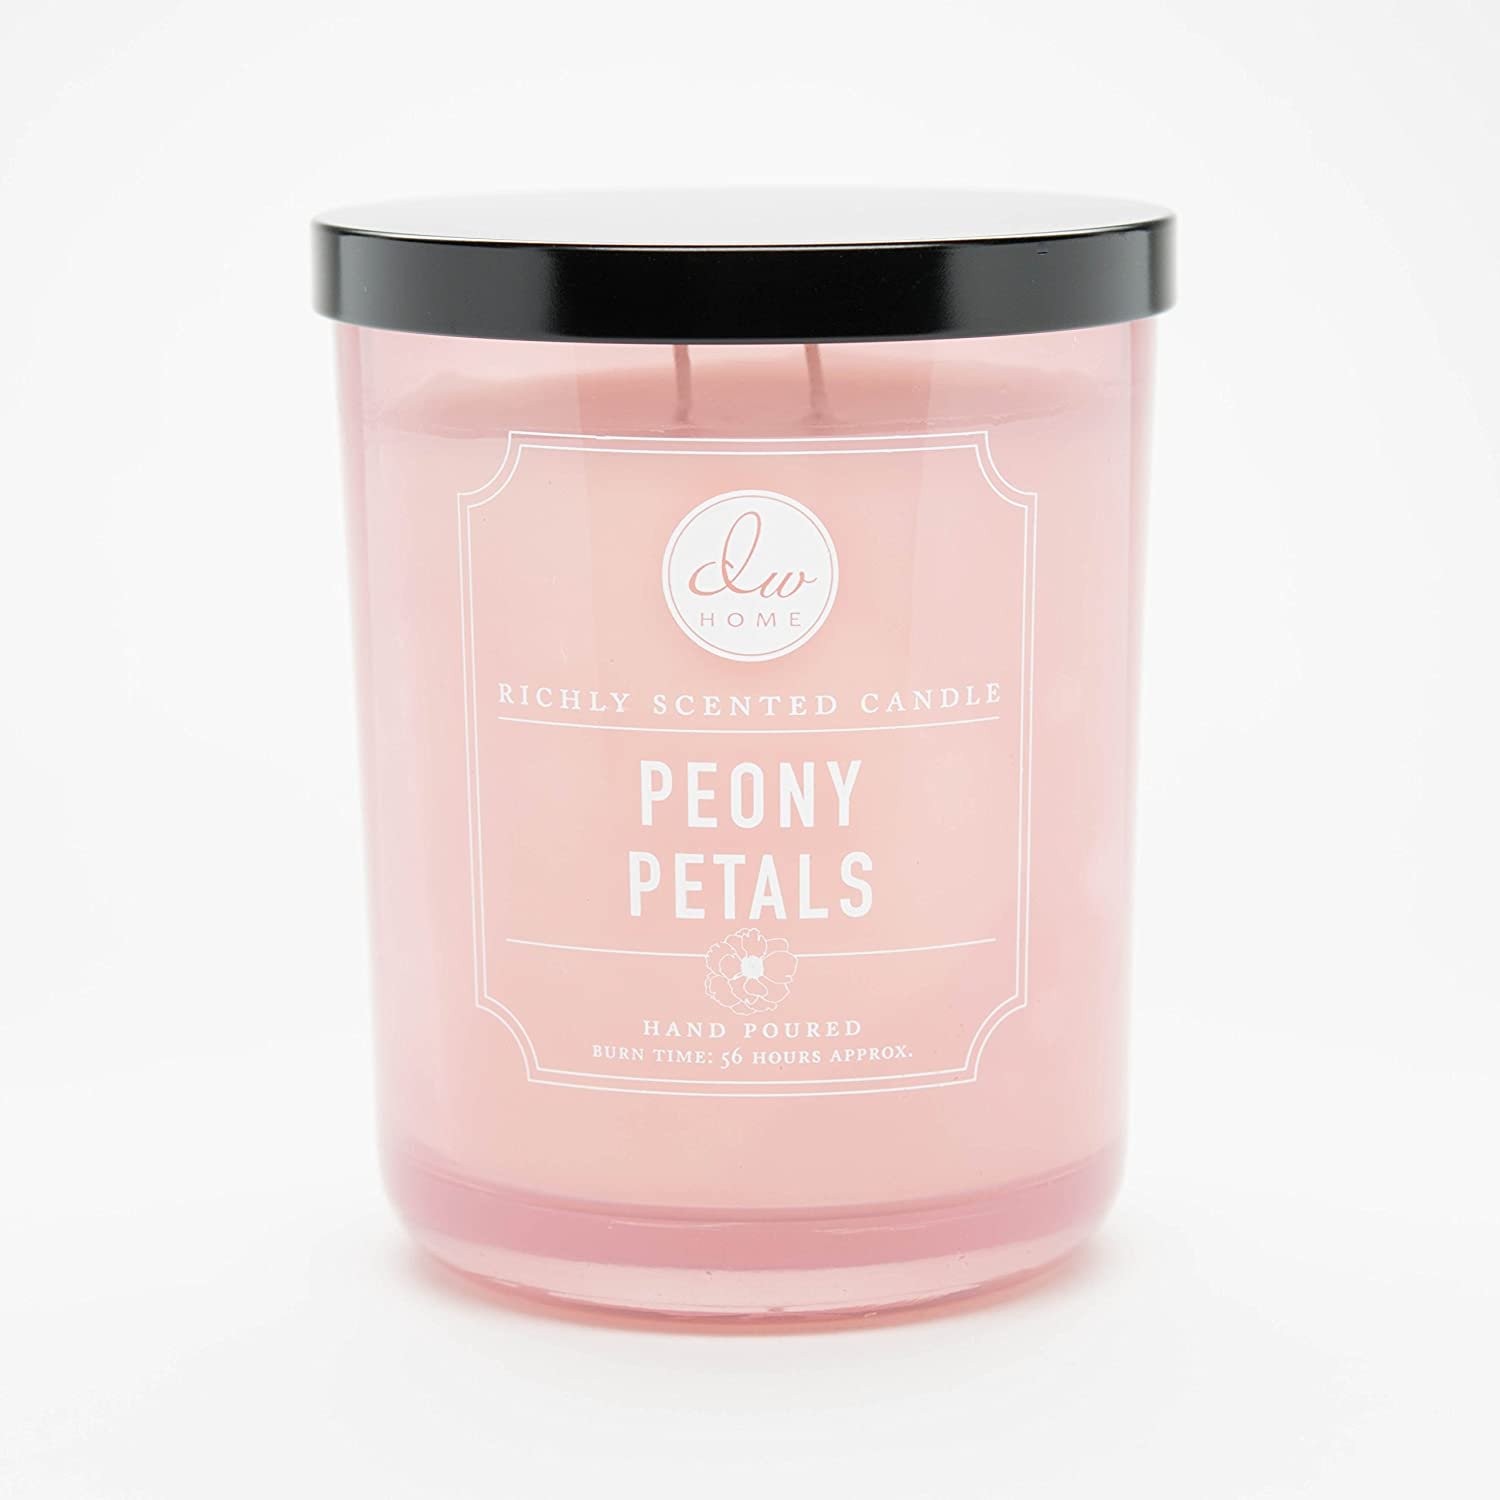 DW Home Large Double Wick Candle, Peony Petals